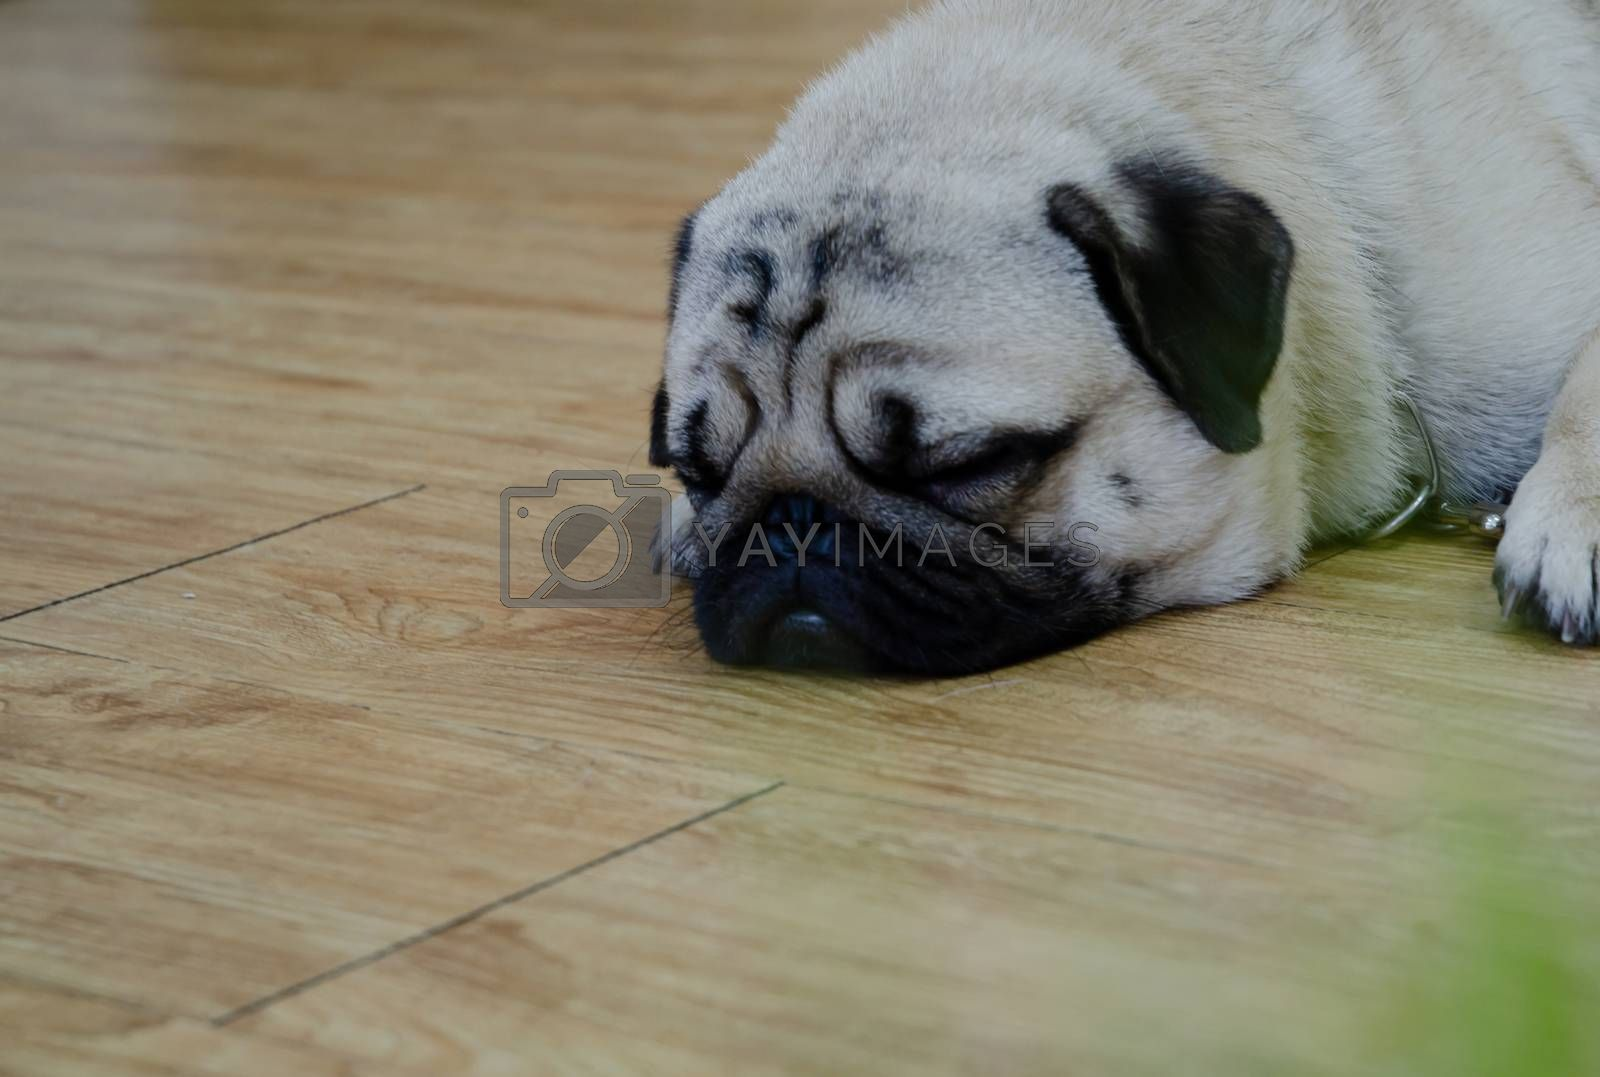 Cute brown hair on the floor in the morning.Cute fat male pet on brown wood floor.Male dog plug.Do not focus on objects.